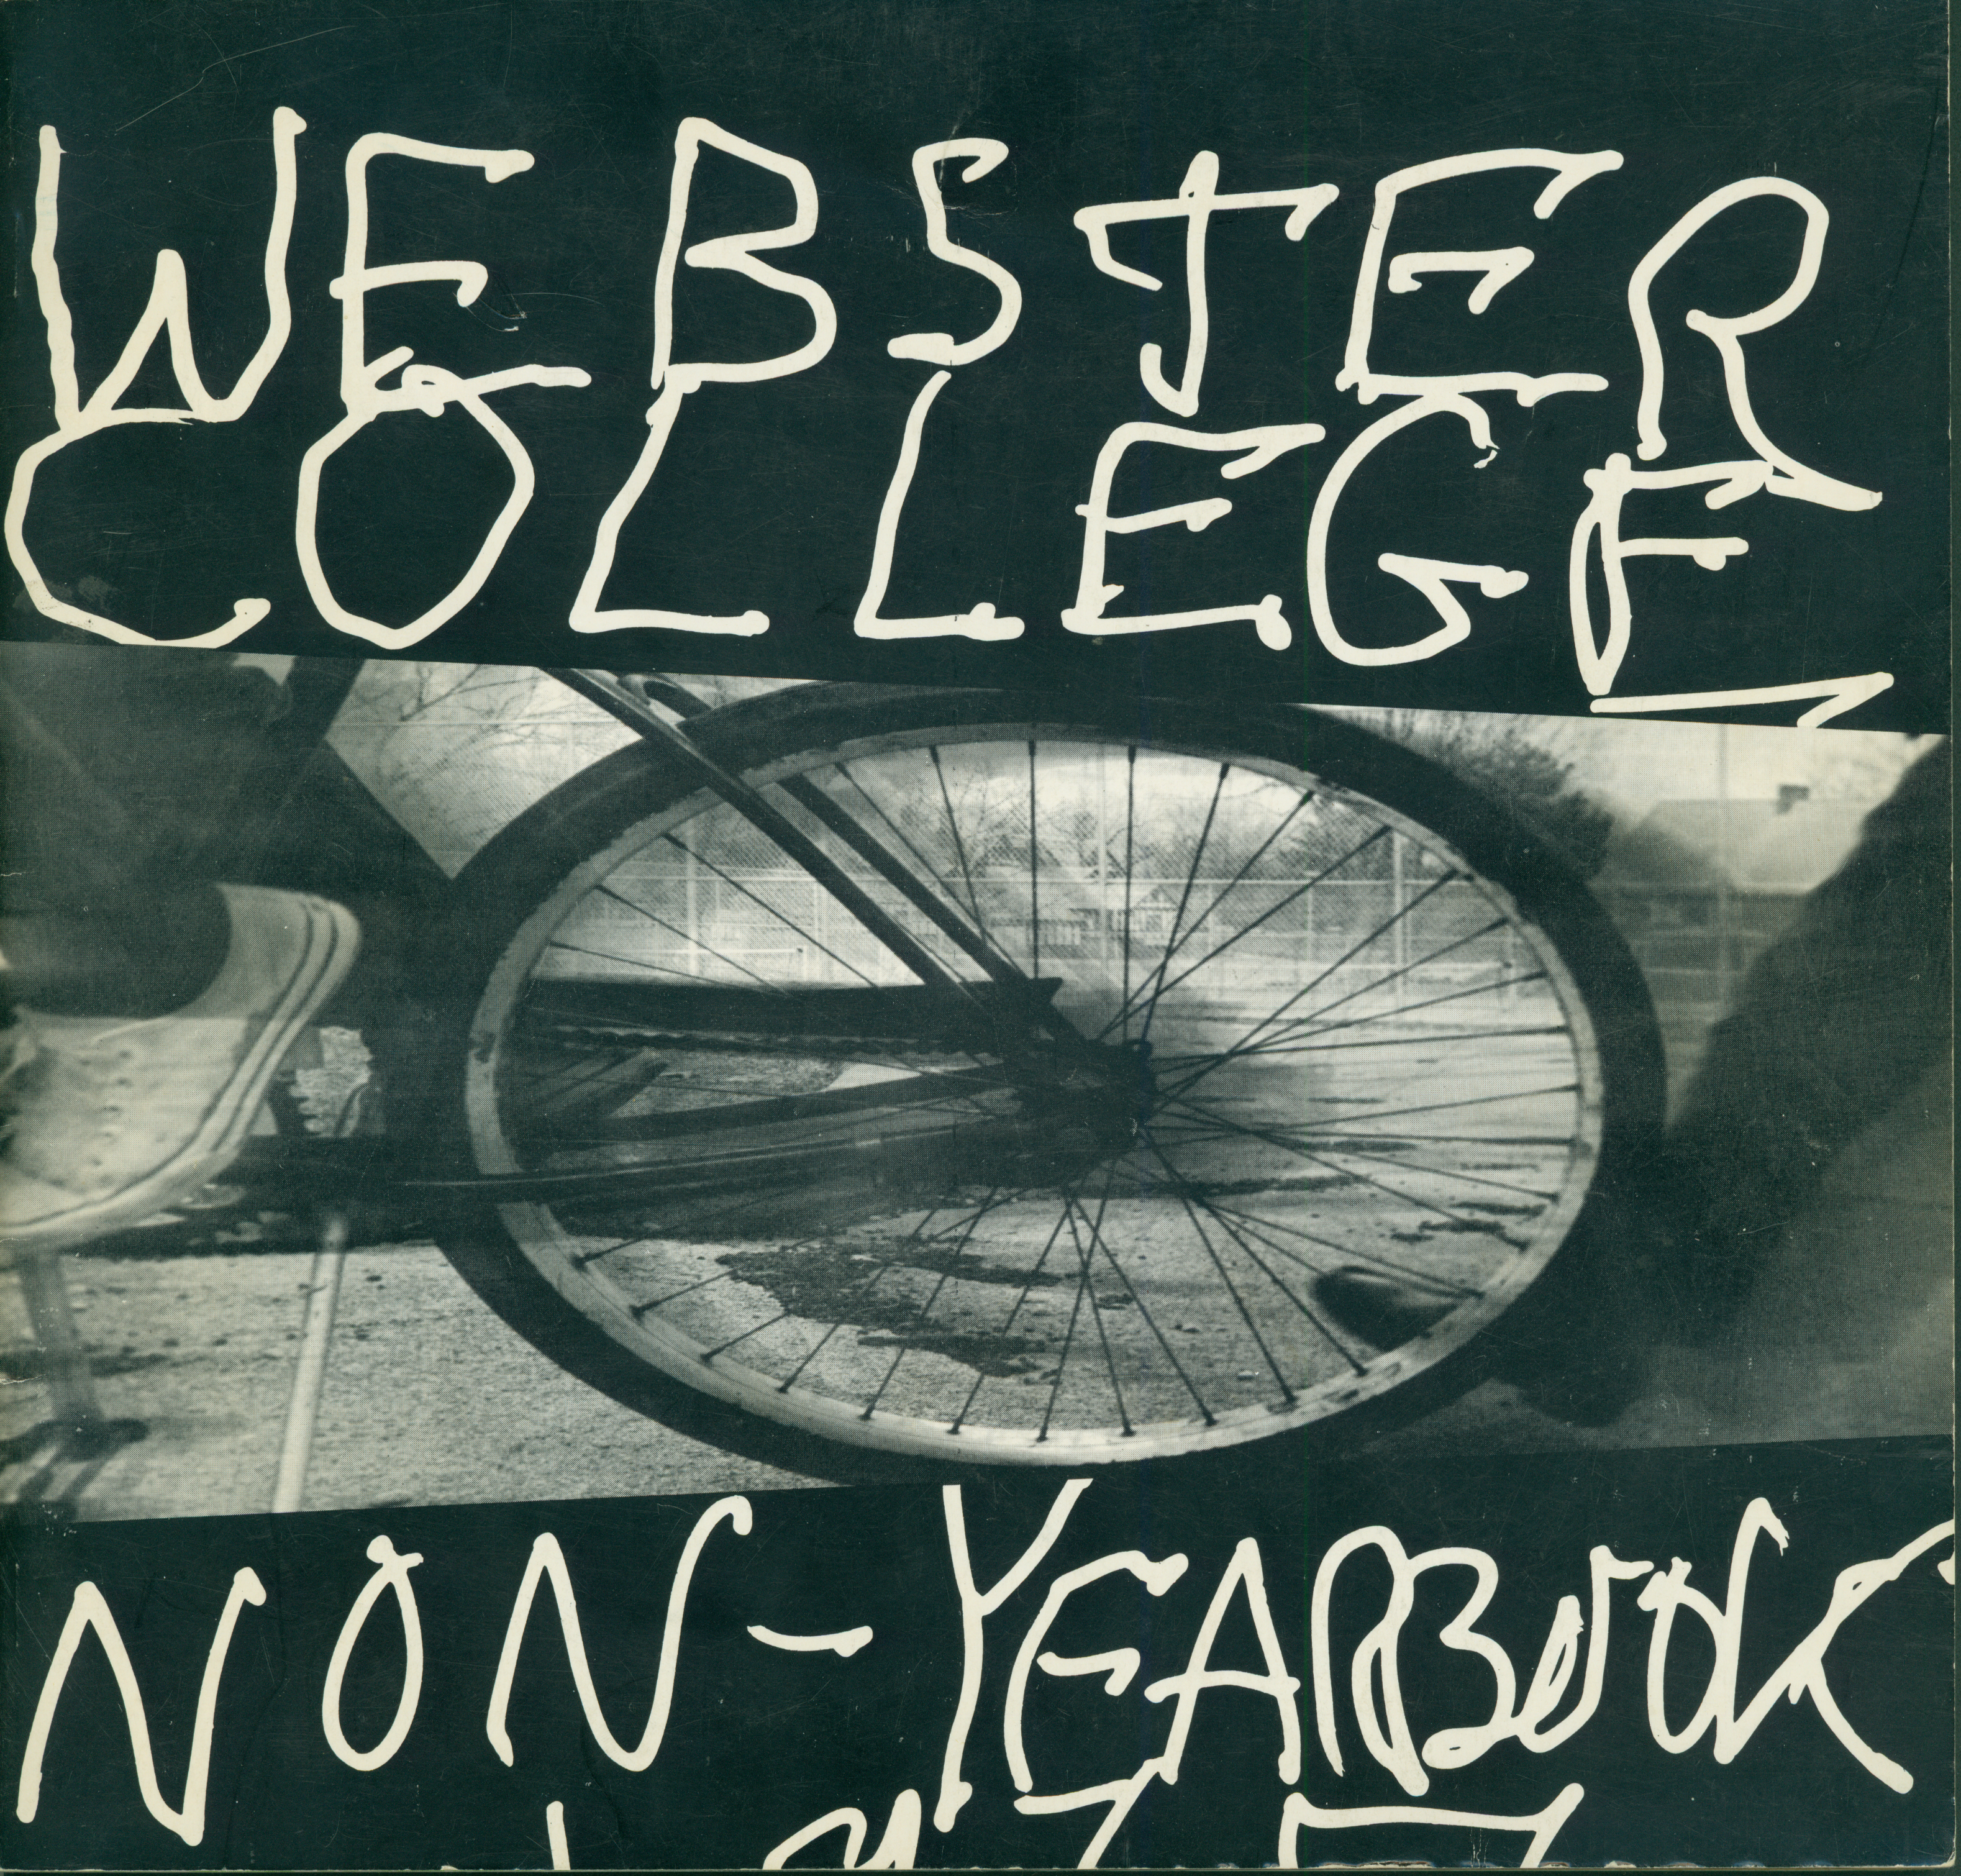 [Front cover from 1967 Webster College Non-Yearbook]